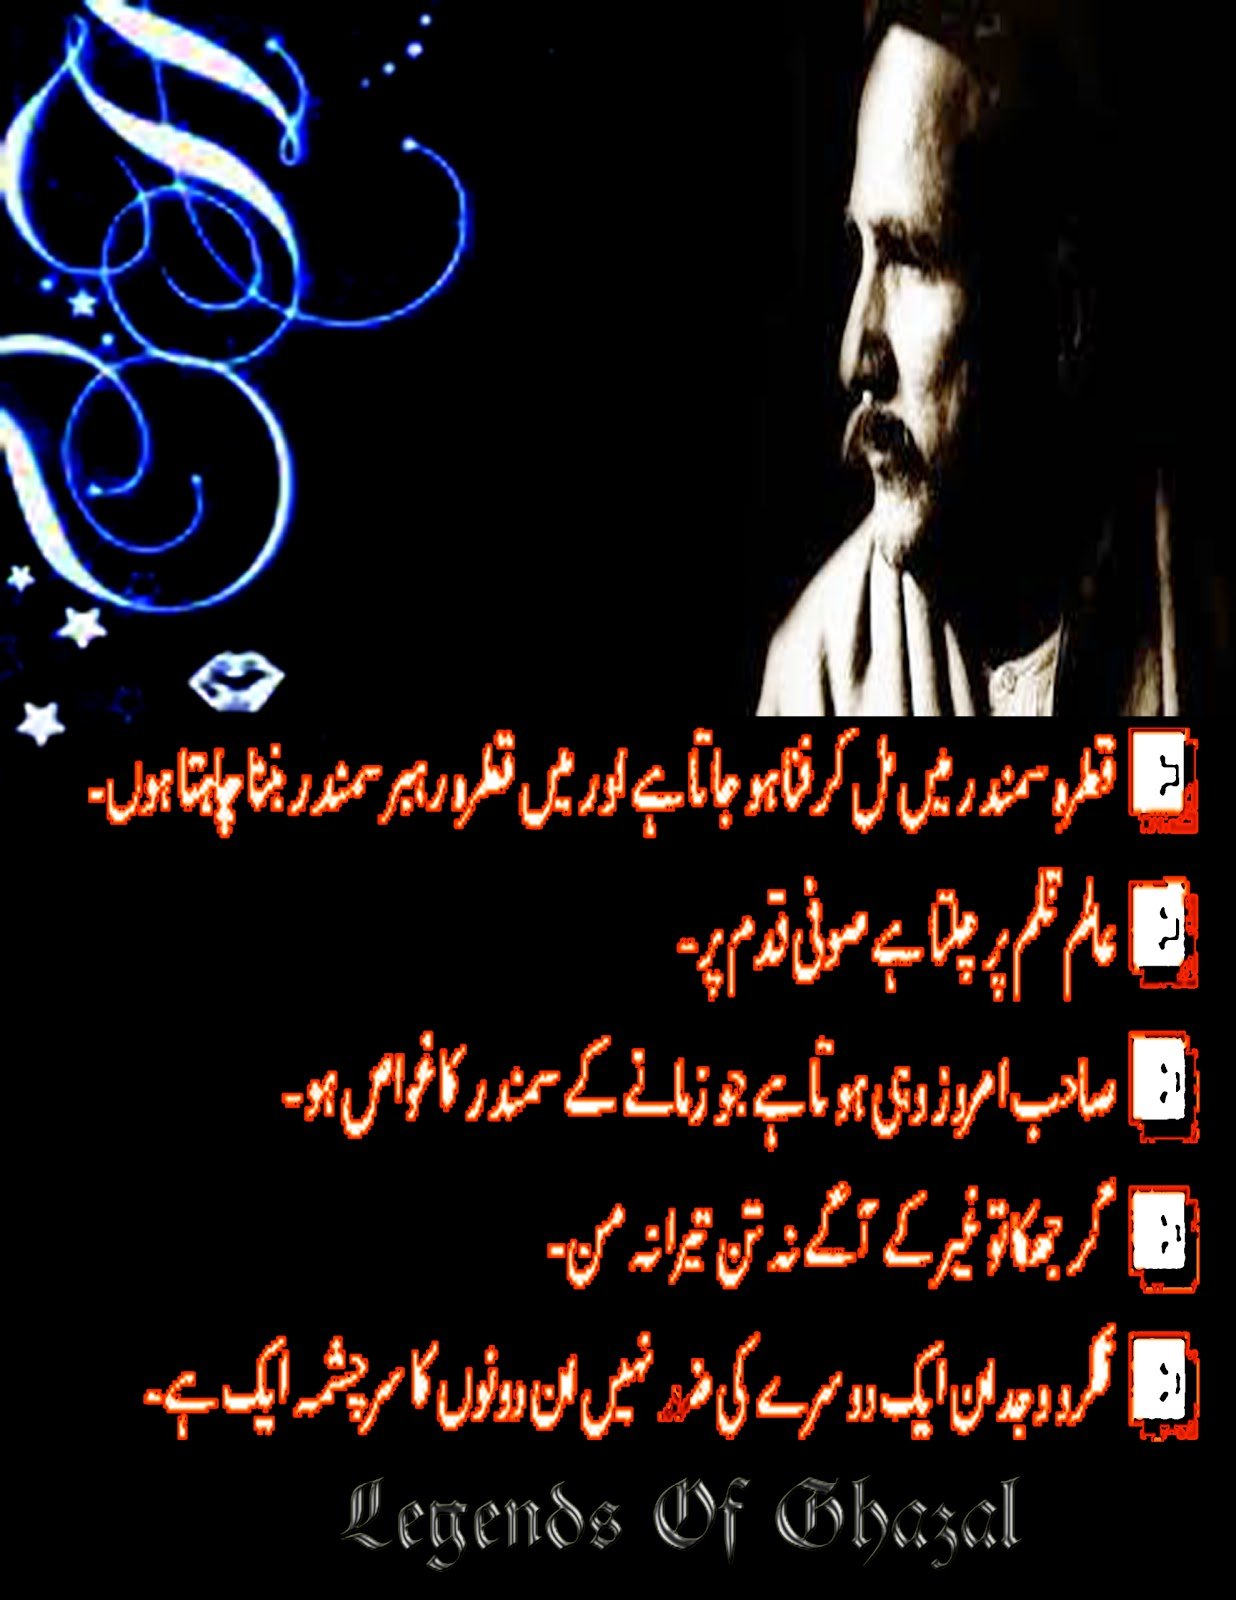 essay allama iqbal quotations Allama iqbal, great poet-philosopher and active political leader, was born at sialkot, punjab, in 1877 he descended from a family of kashmiri brahmins, who had embraced islam about 300 years earlier.